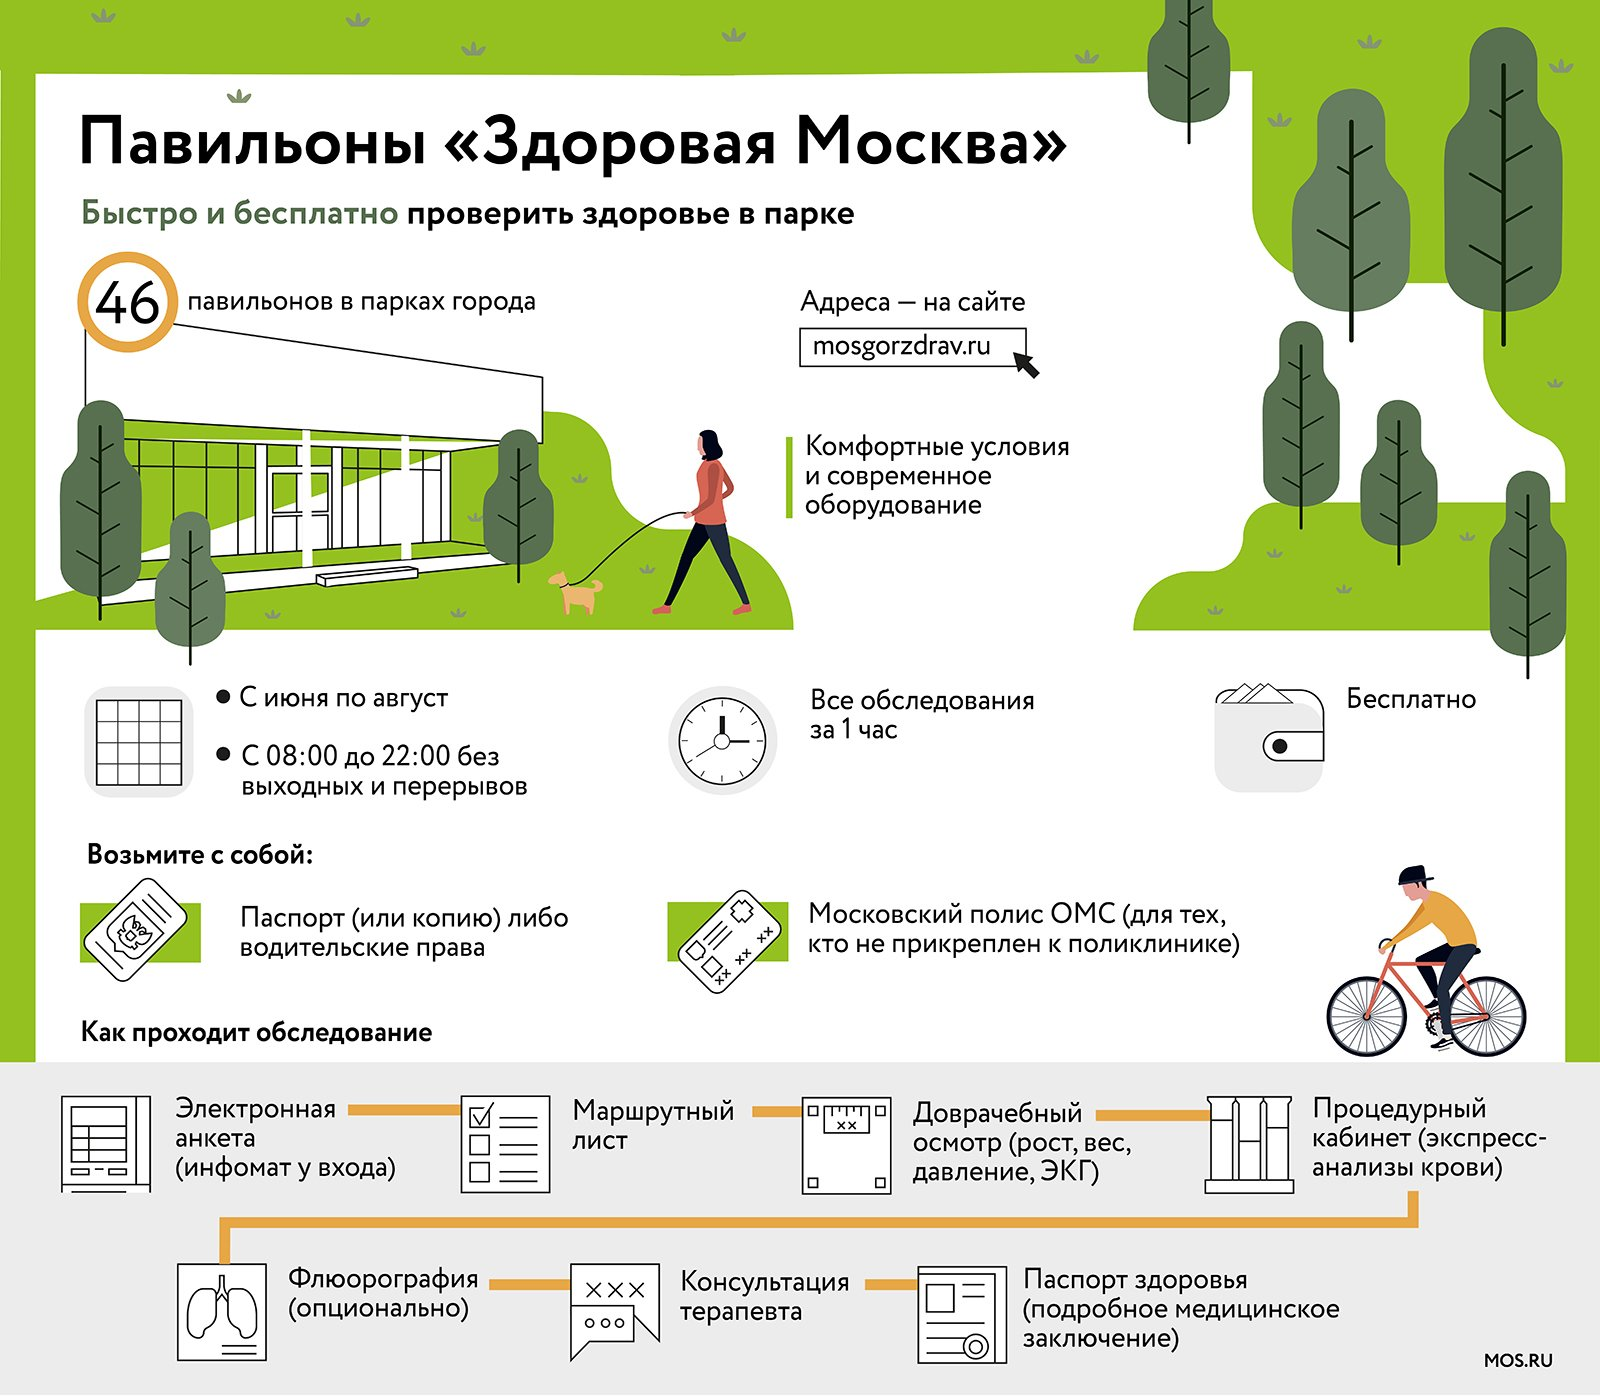 Check health in parks: all 46 Healthy Moscow pavilions earned in the city